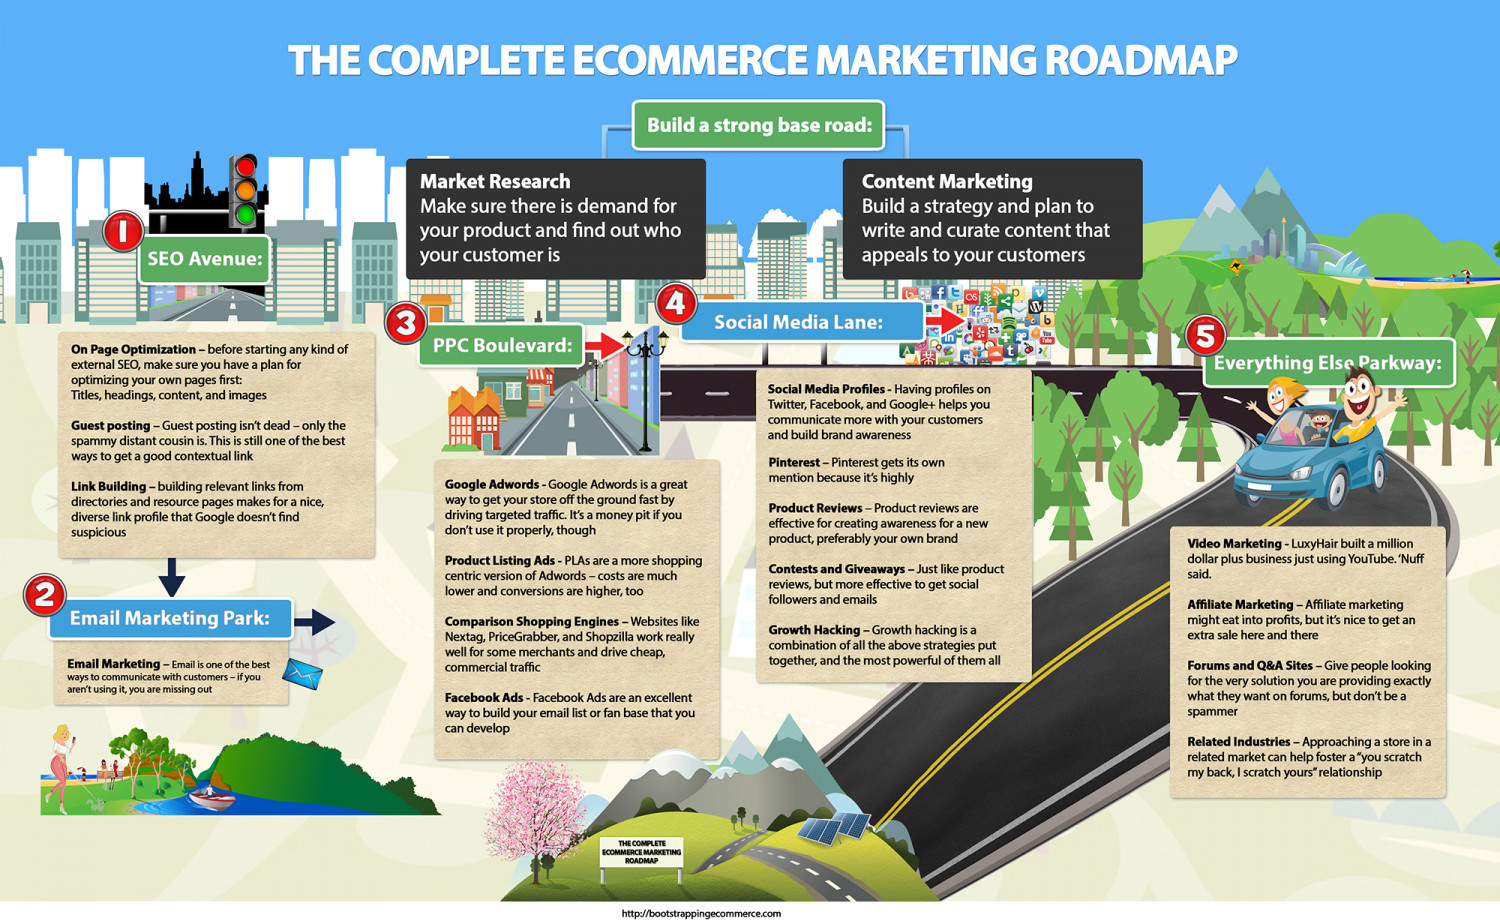 The Complete Ecommerce Marketing Roadmap | Visual.ly